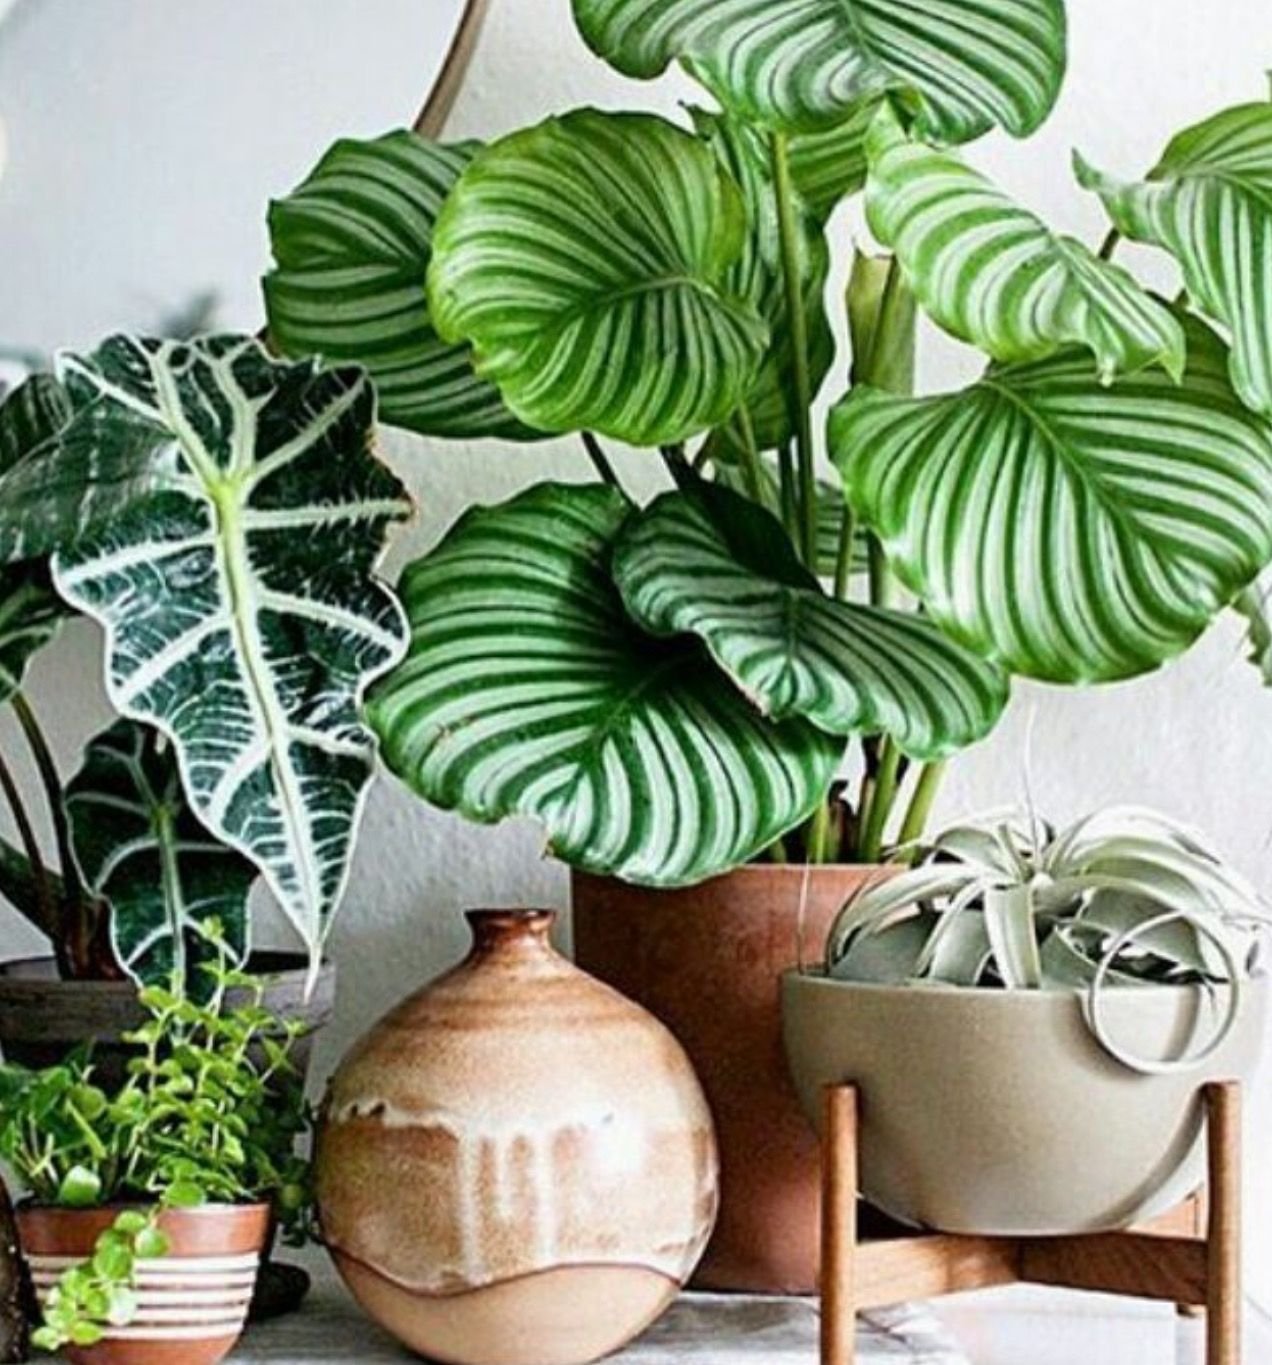 Houseplants Houseplants In 2019 Plants Indoor Plants House Plants